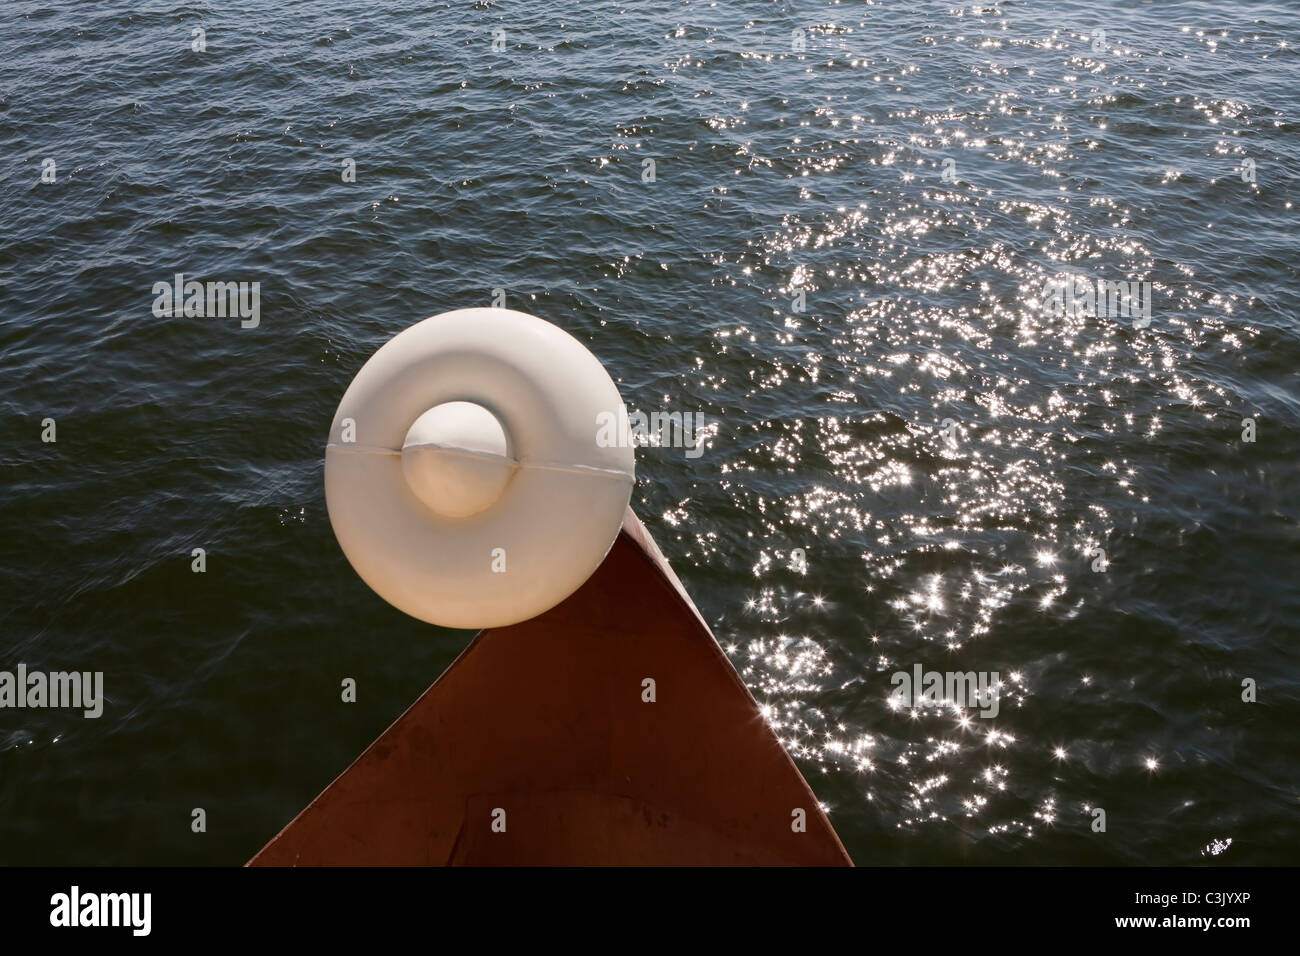 A detail of the prow of the local Luxor Nile ferry against sparkling river water, Egypt, Africa - Stock Image